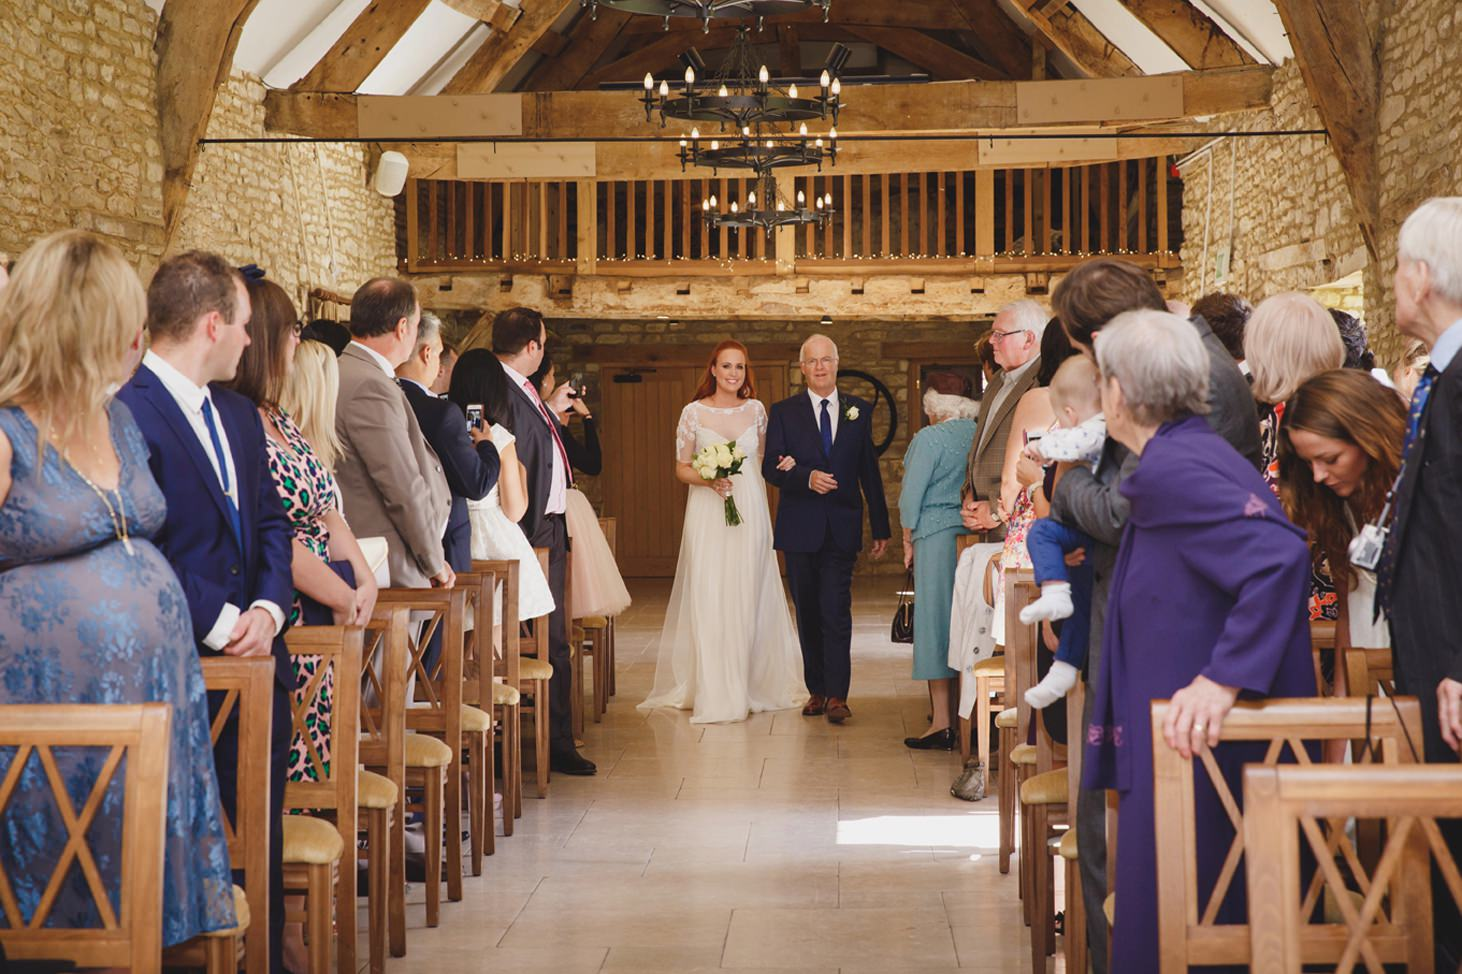 Caswell House wedding photography bride walking down aisle